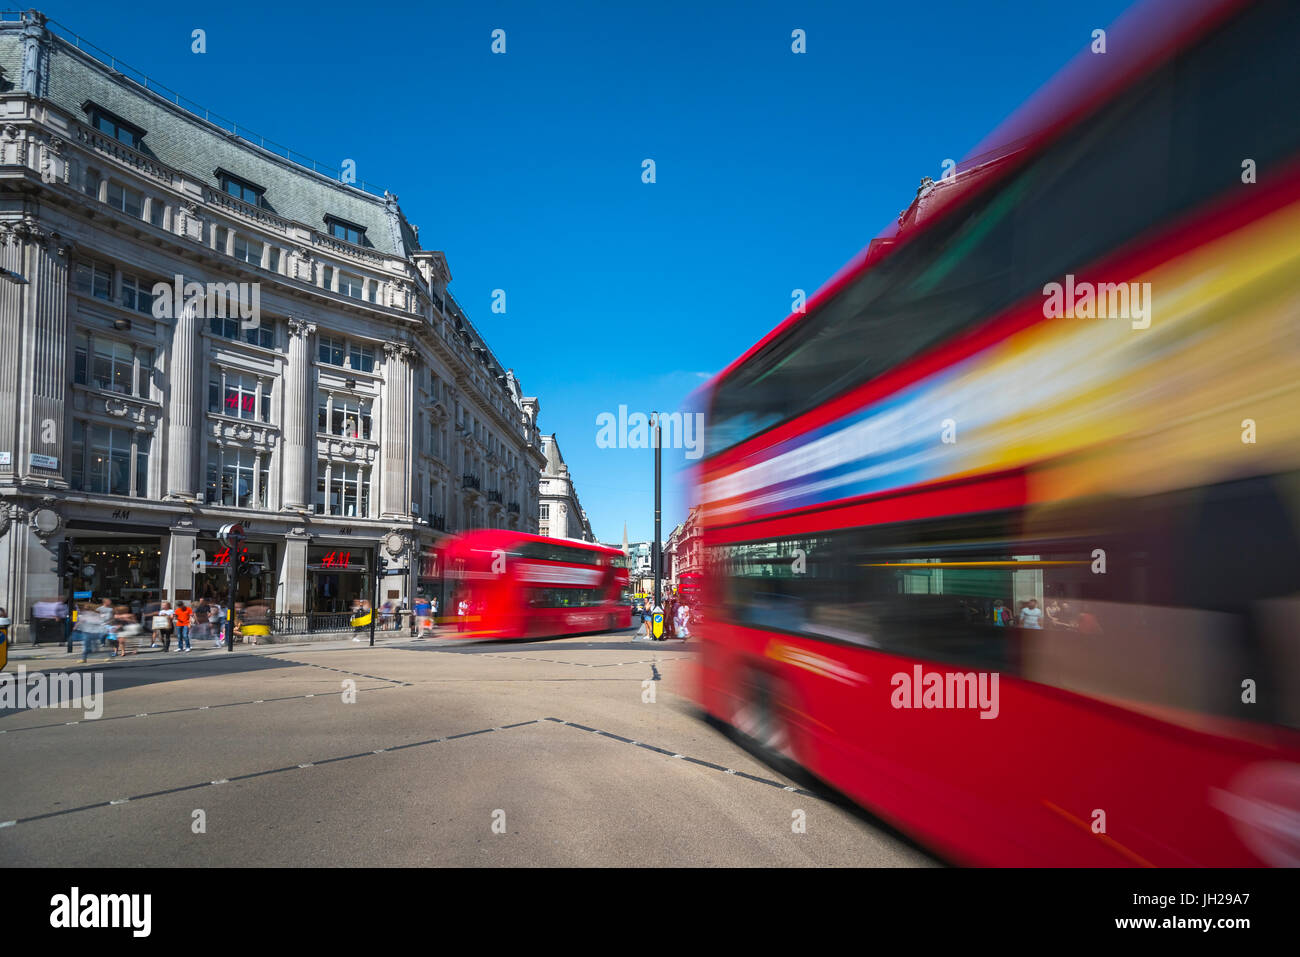 Double decker buses, Oxford Circus, West End, London, England, United Kingdom, Europe - Stock Image